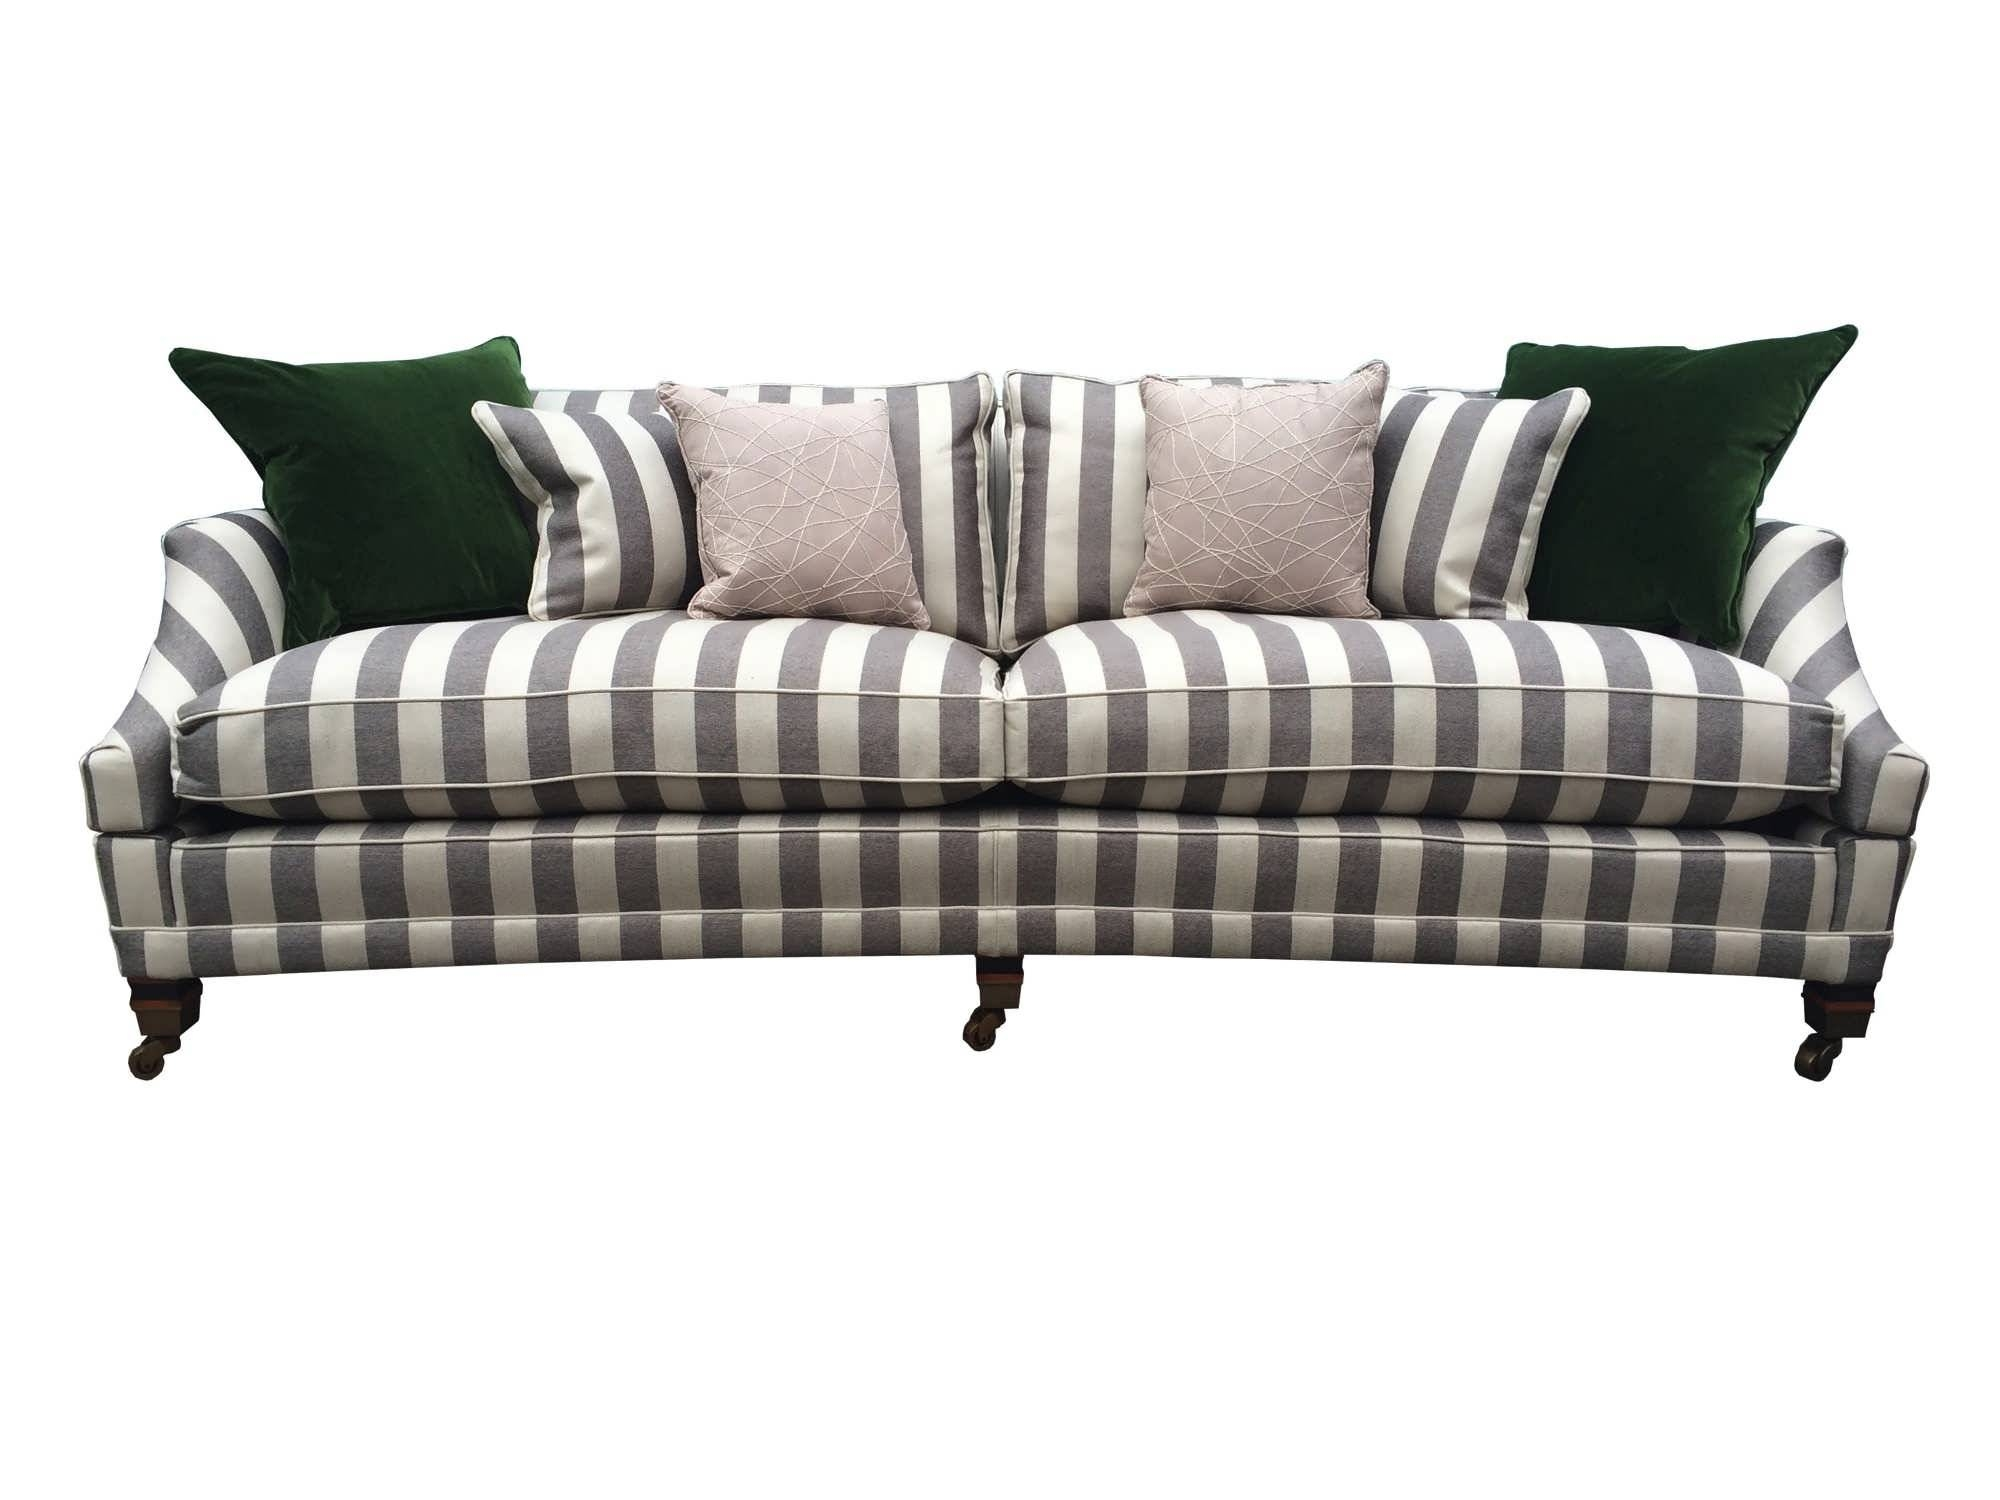 Sofa : Affordable Sofas Tufted Sofa Modular Sofa Recliner Sofa throughout Affordable Tufted Sofas (Image 10 of 15)